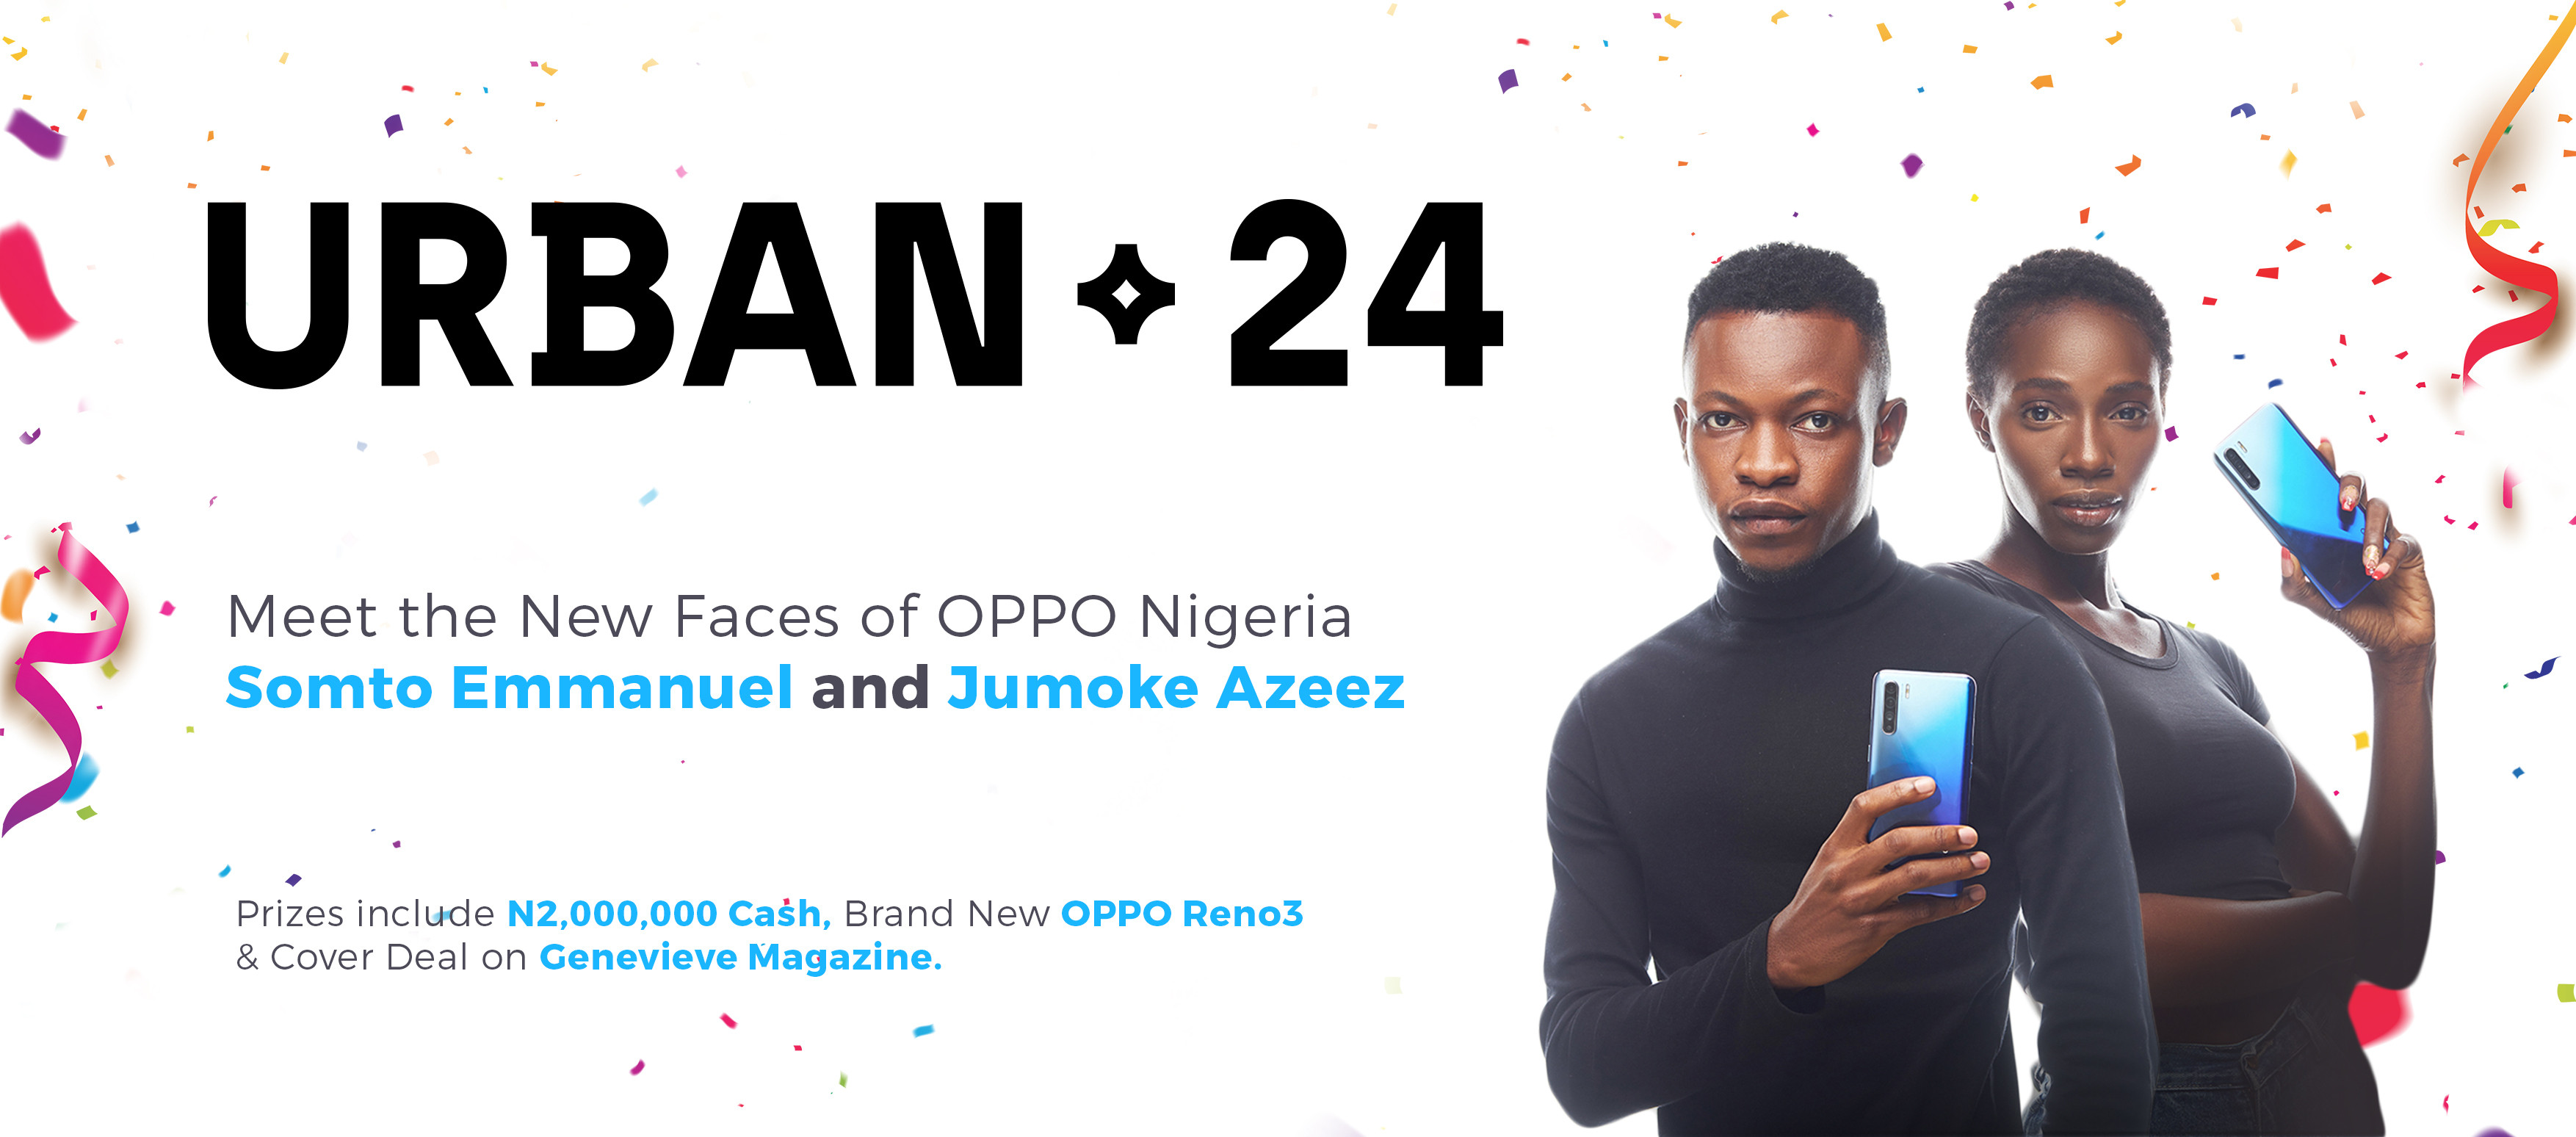 OPPO Mobile Nigeria unveils Two winners from the OPPO Reno3 Urban24 Contest with prizes worth Millions of Naira in Cash and Endorsements